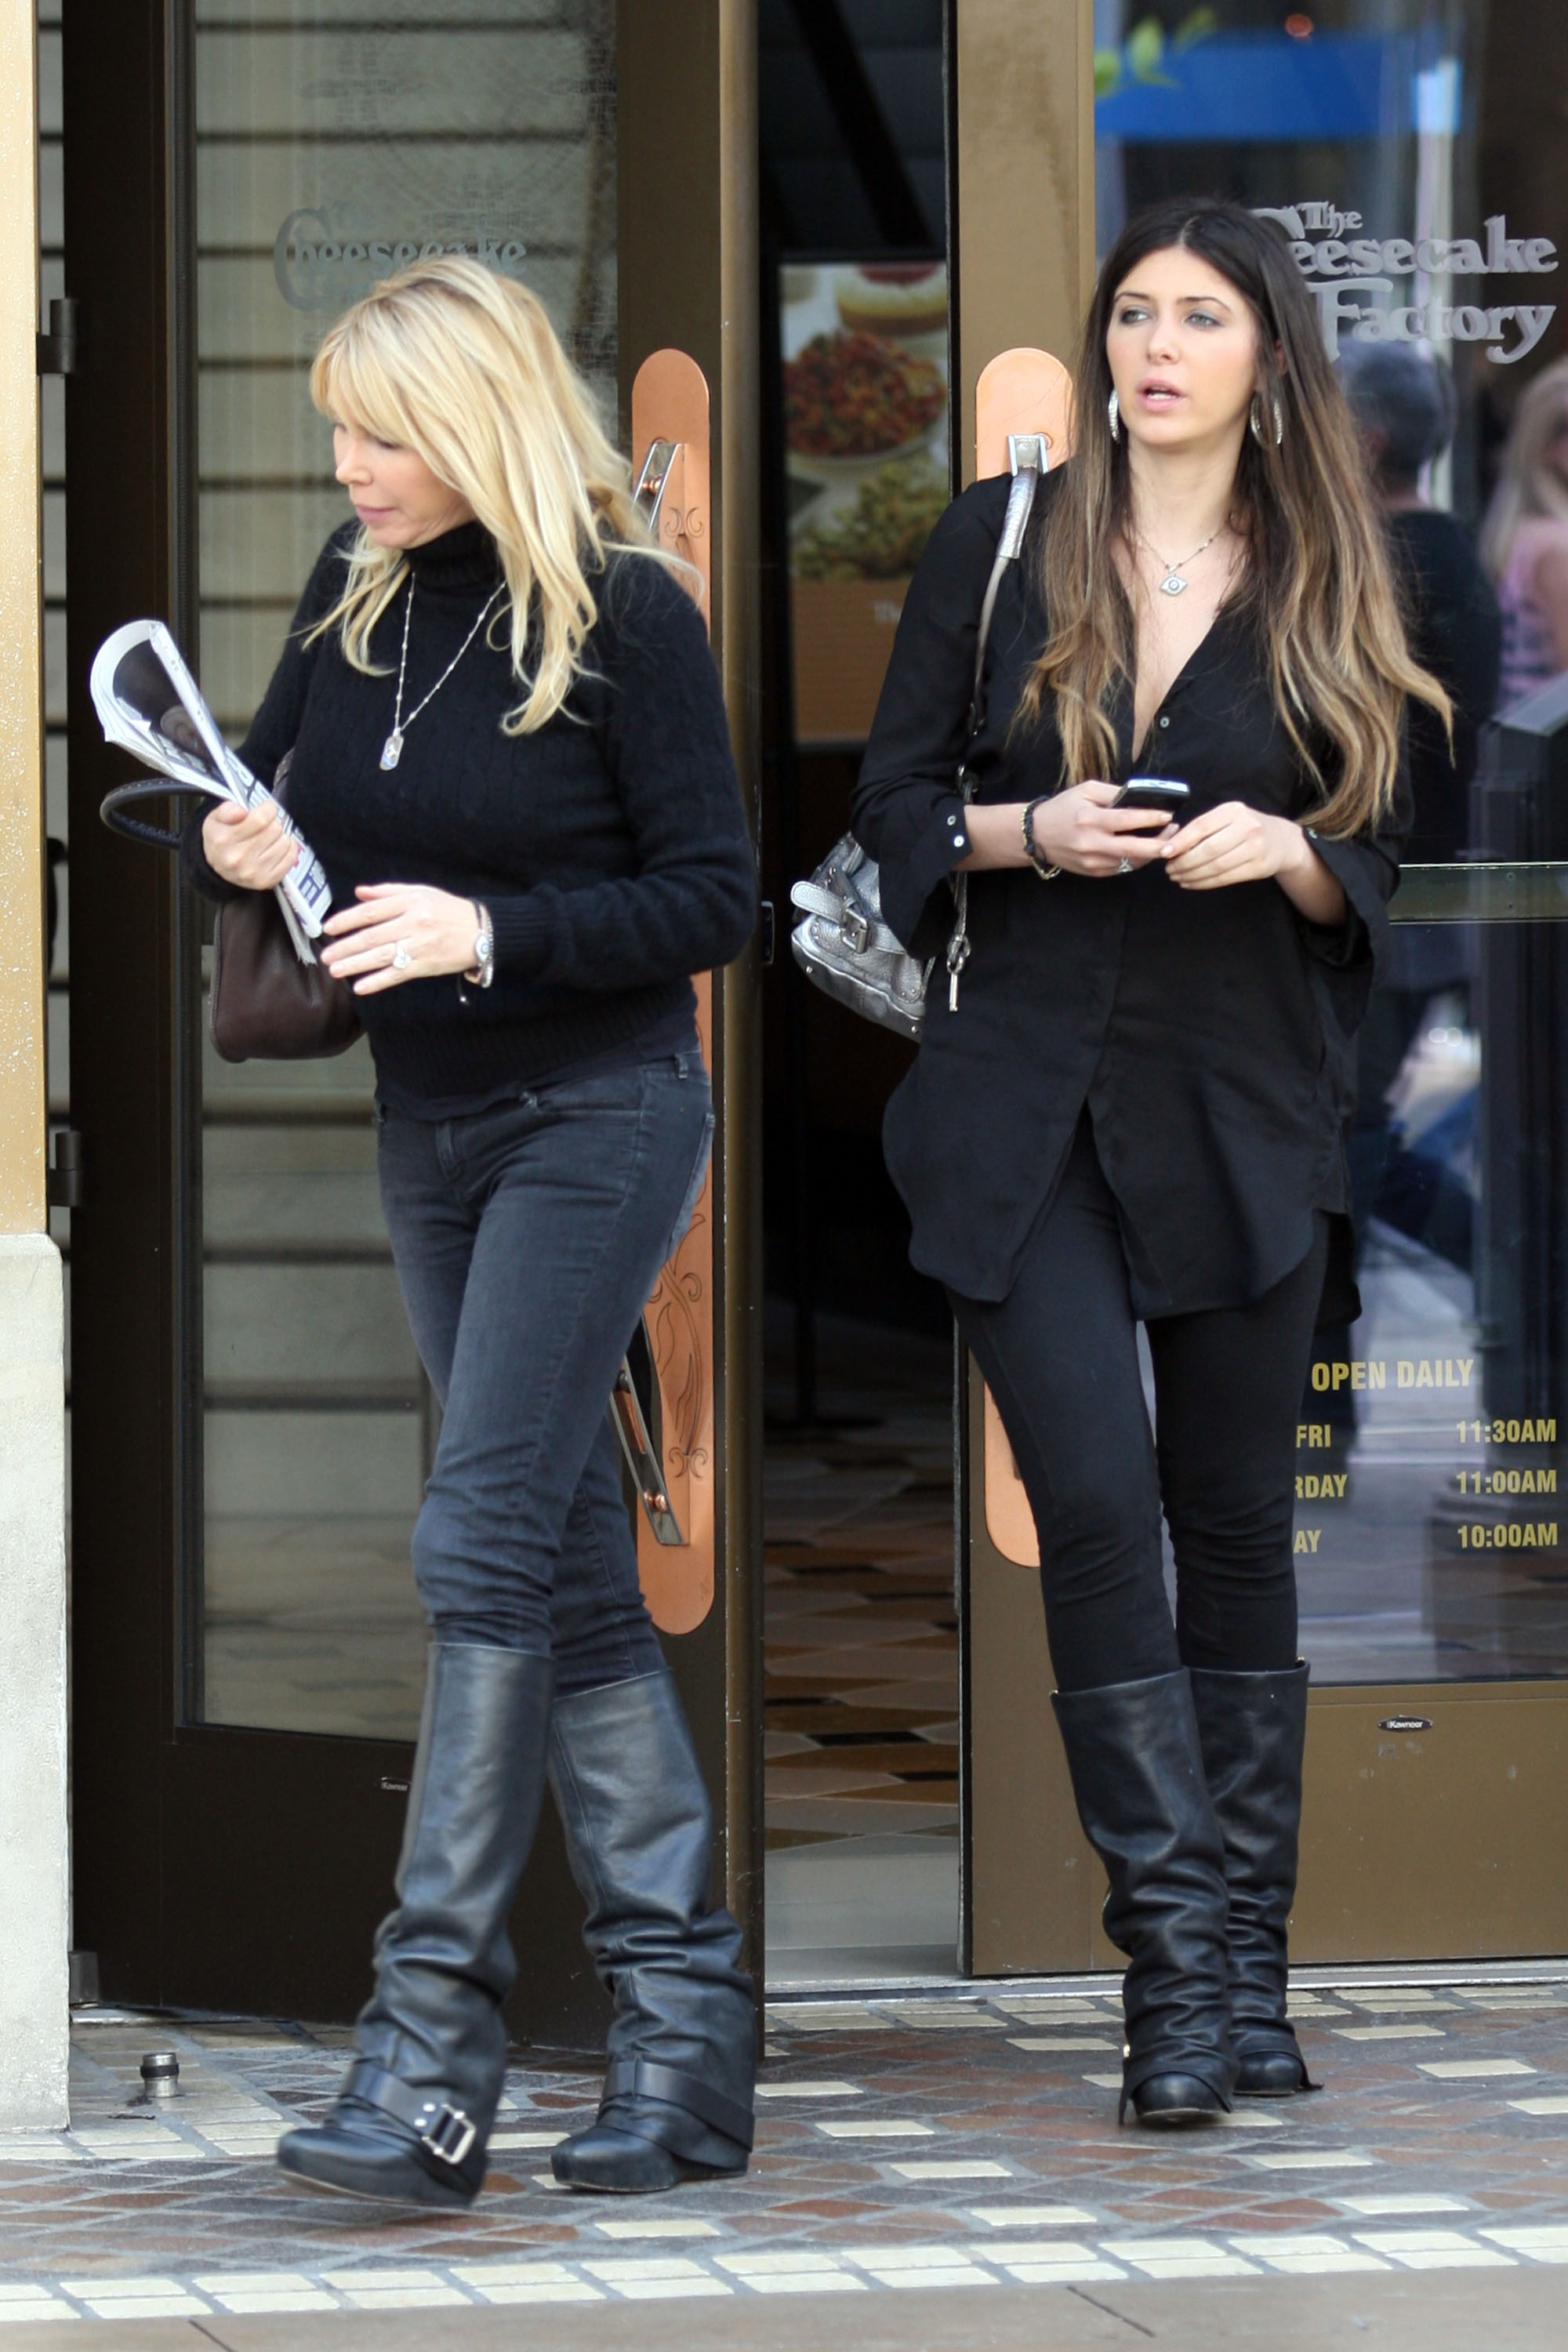 24823_celebrity-paradise.com-The_Elder-Brittny_Gastineau_2010-02-01_-_out_shopping_in_Hollywood_122_84lo.jpg